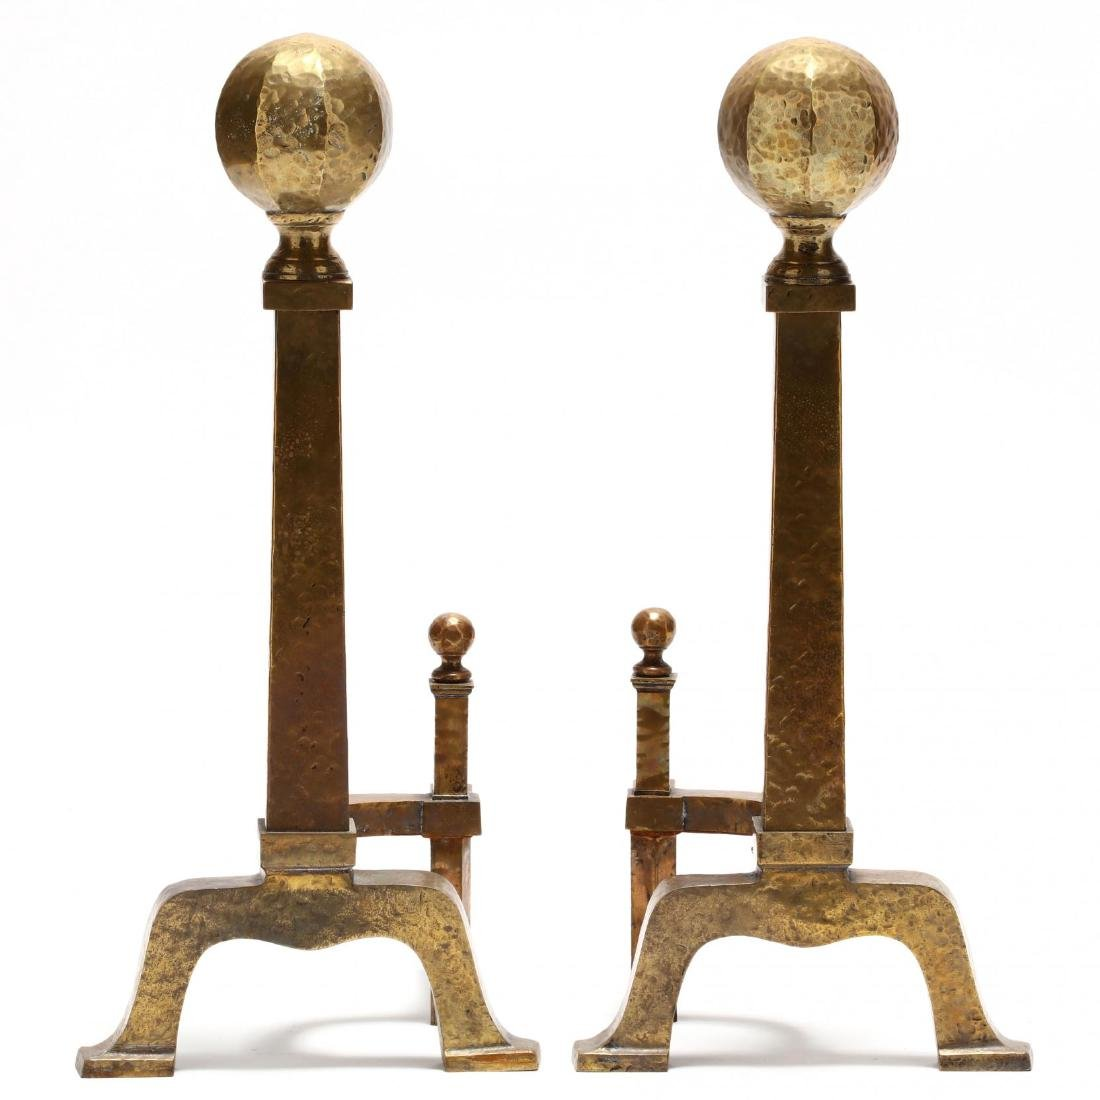 Pair of Arts and Crafts Style Andirons